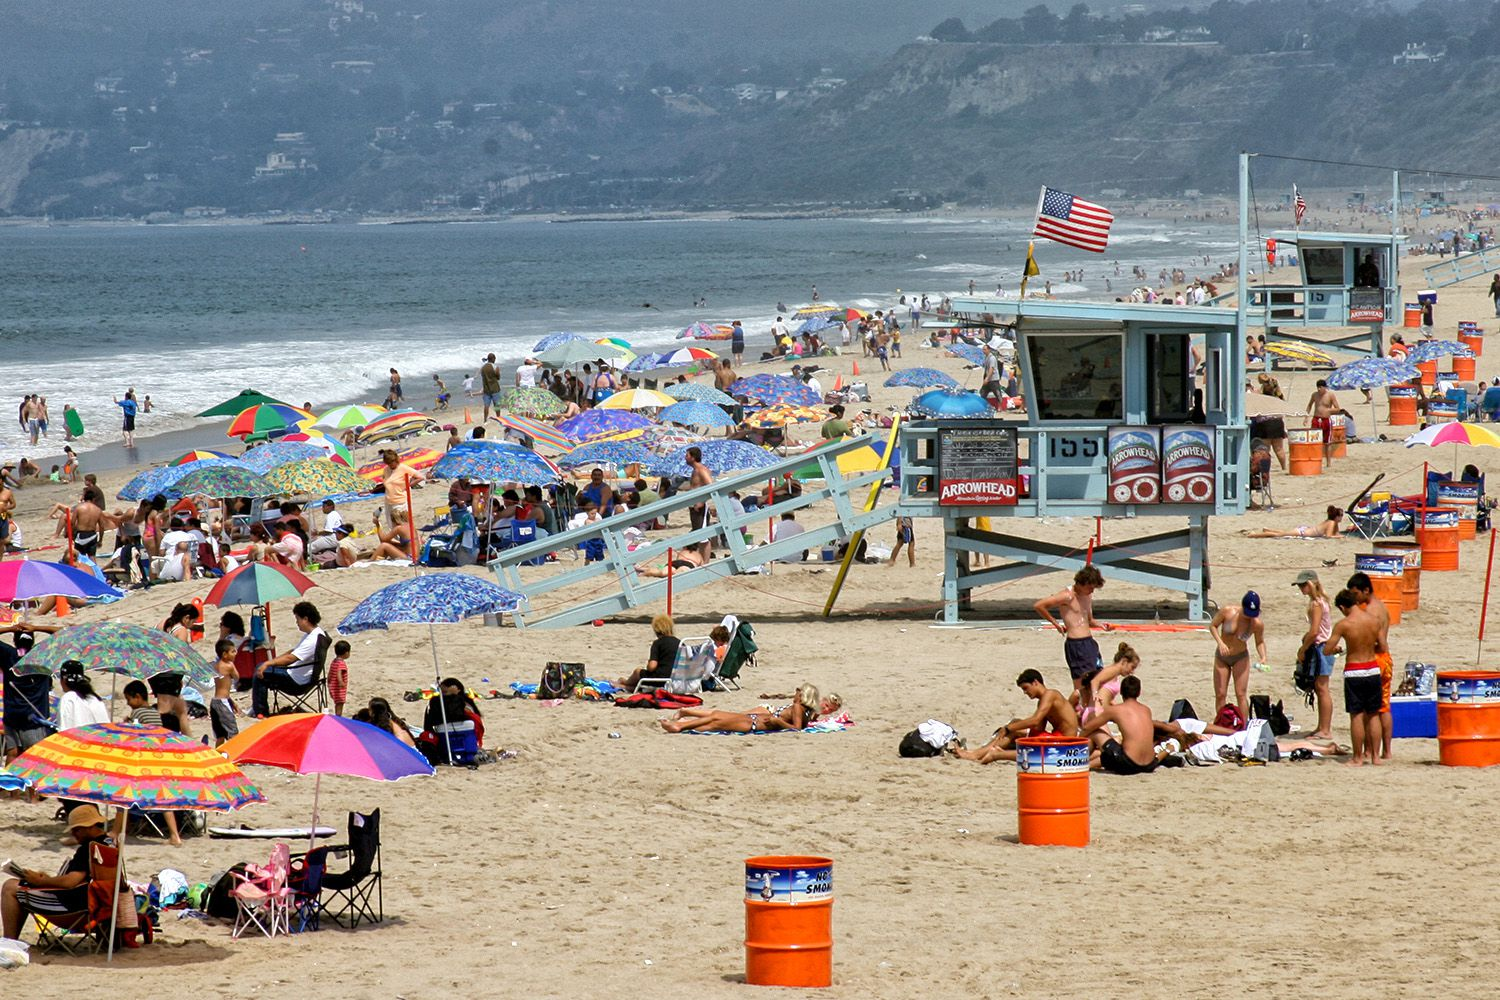 Santa Monica Beach How To See The Scenic Sand